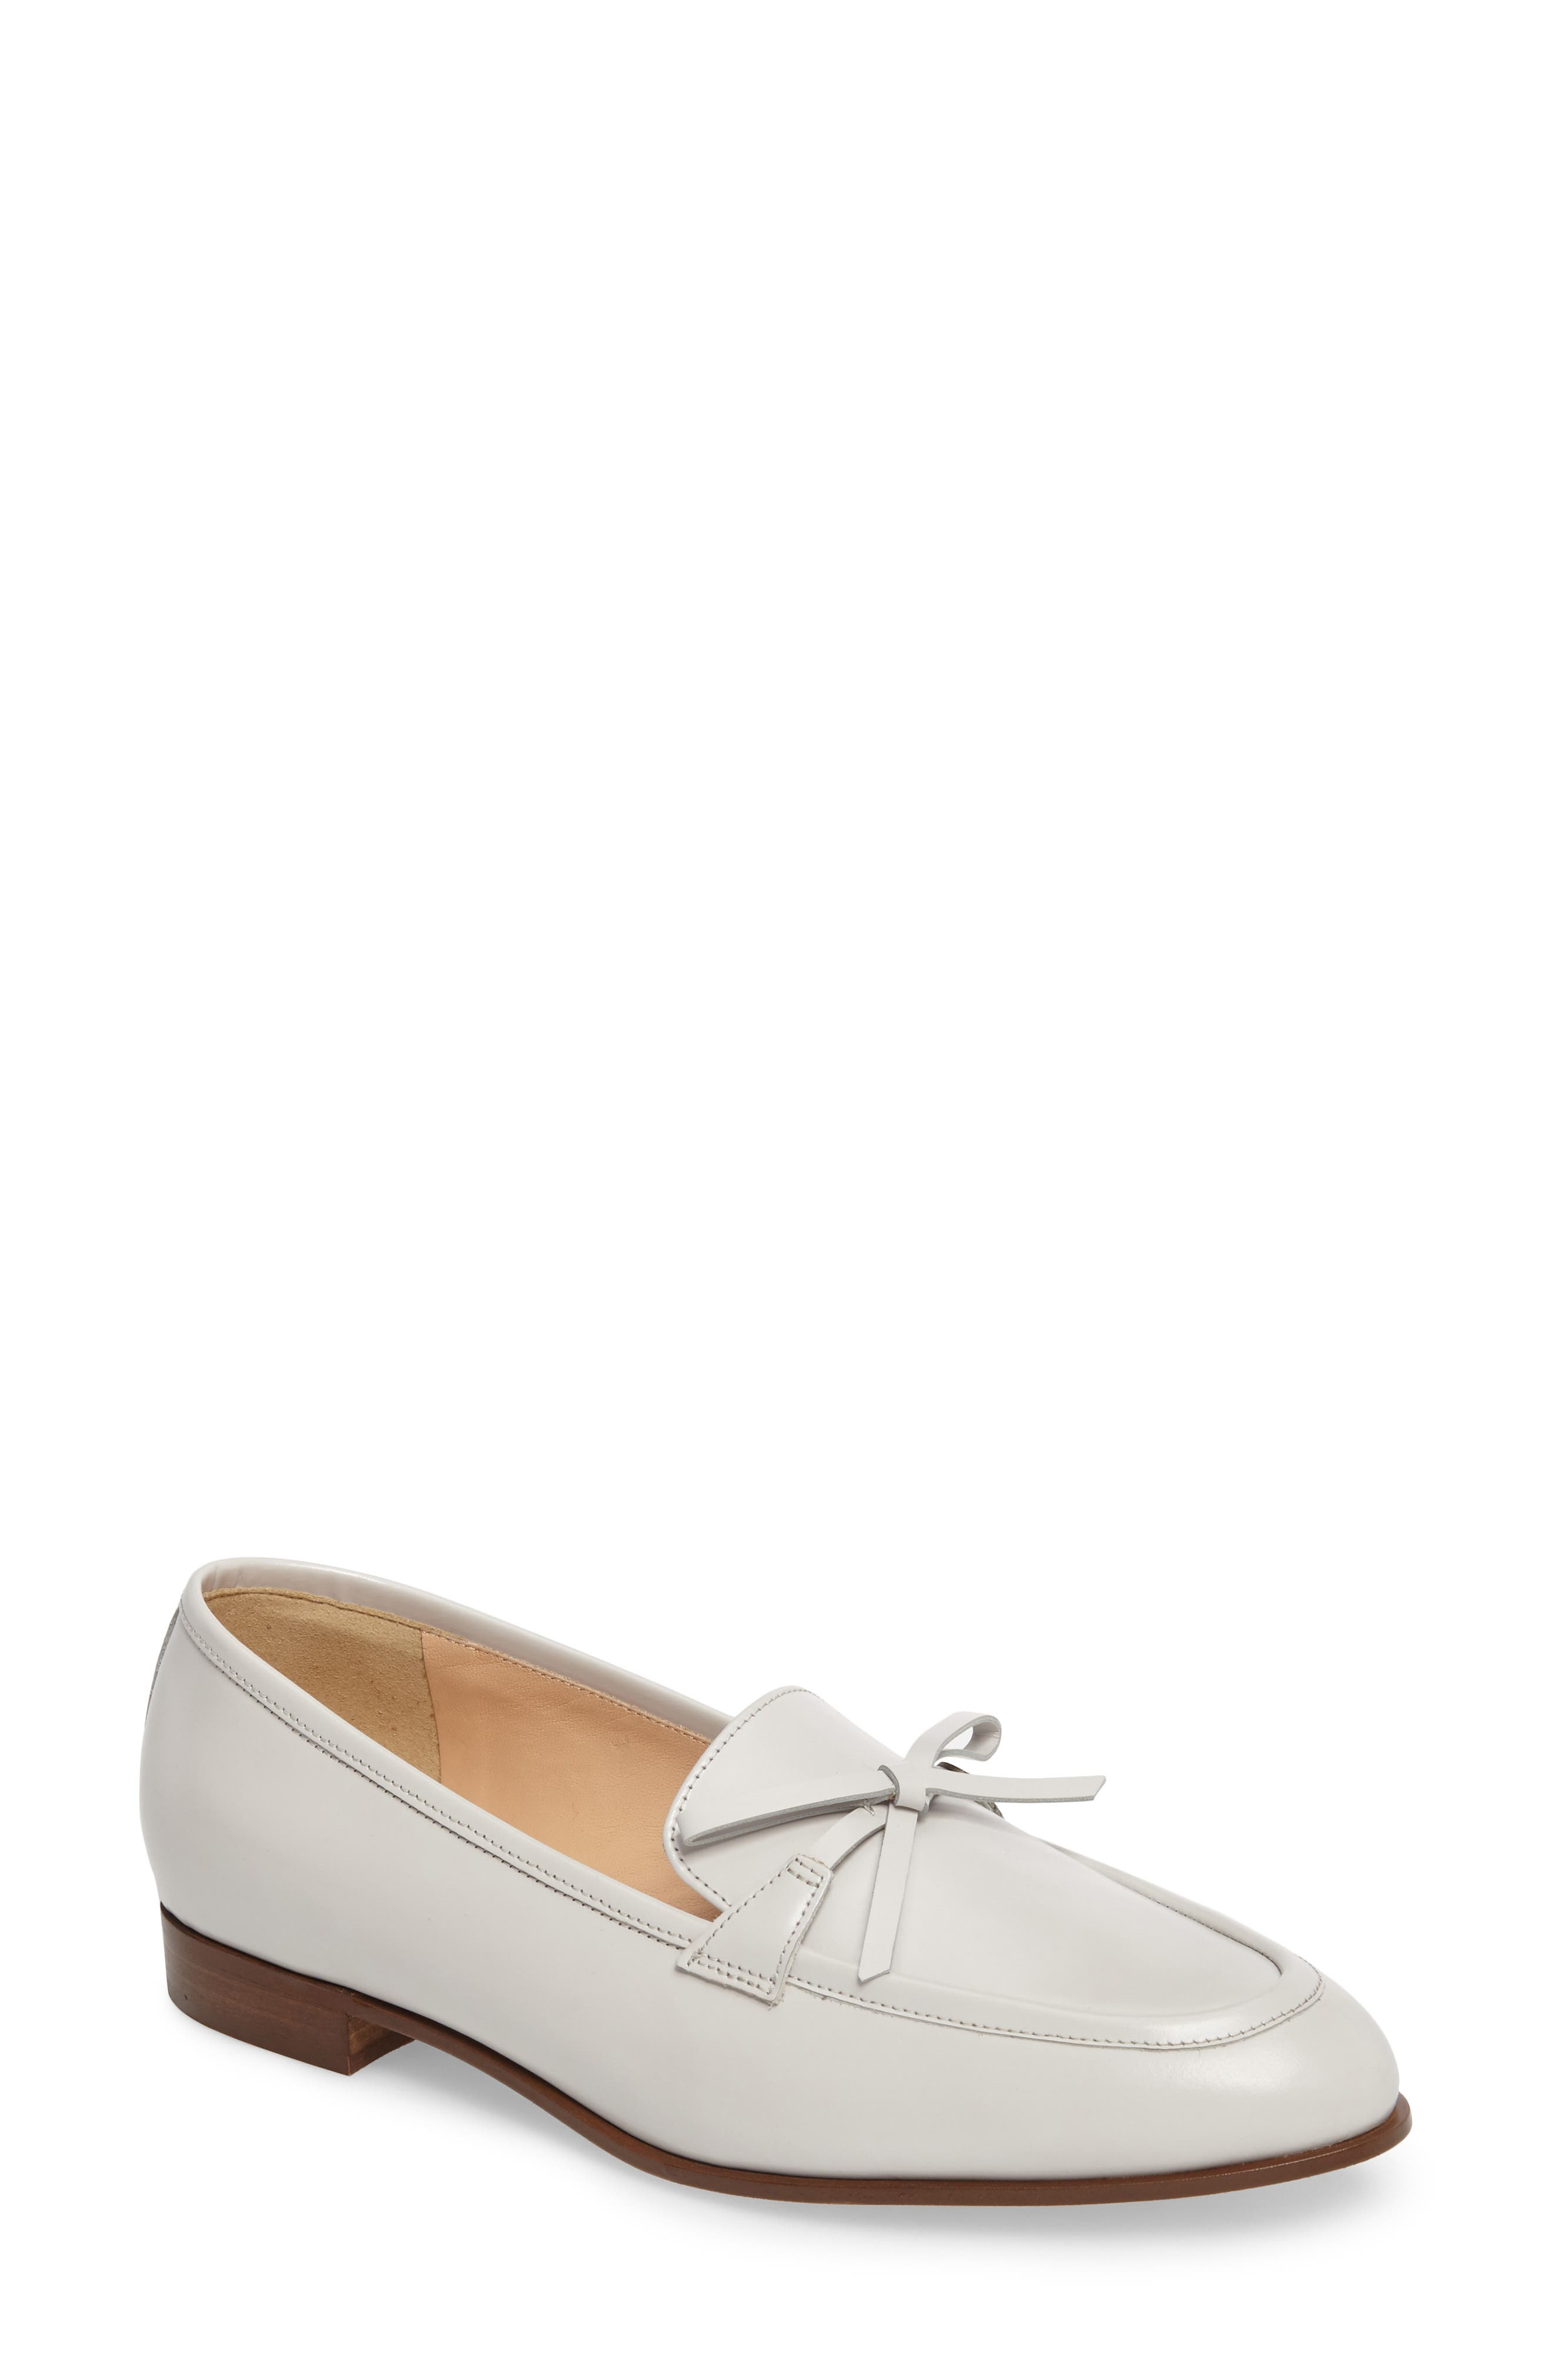 Main Image - J.Crew Bow Loafer (Women)